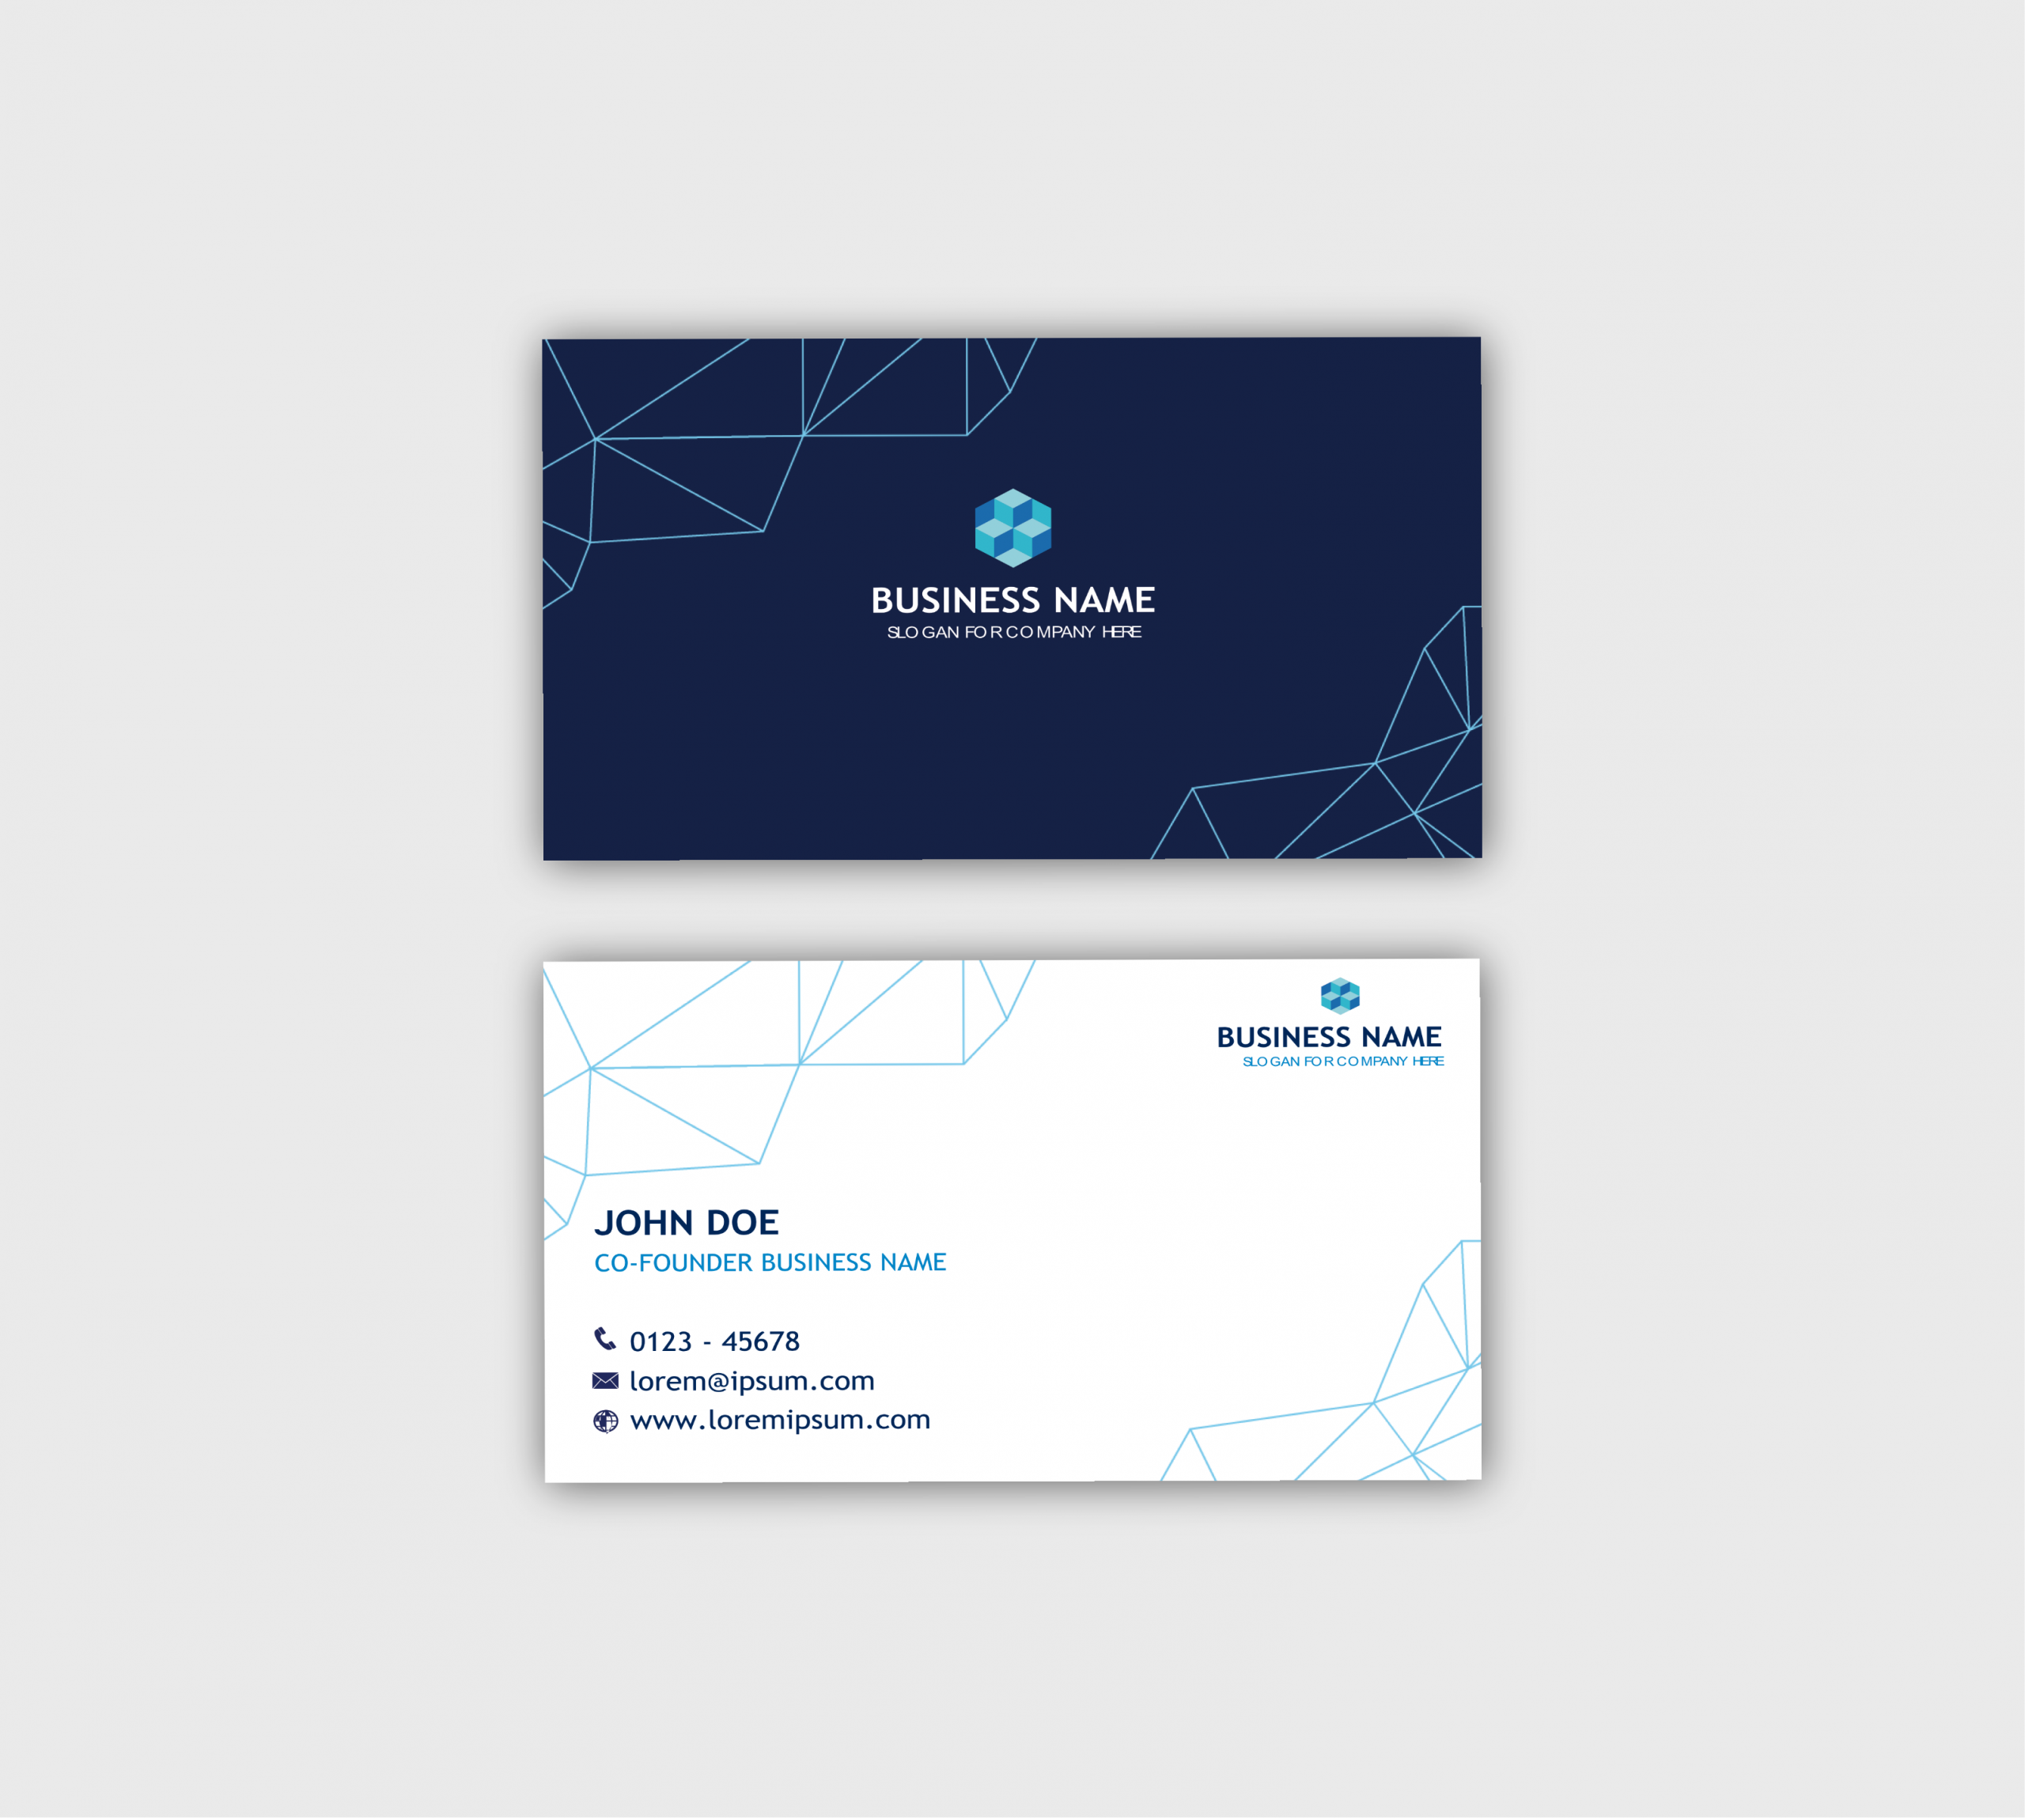 Best value business cards cleverprint click to enlarge homechoose your designbusiness cardsbest value colourmoves